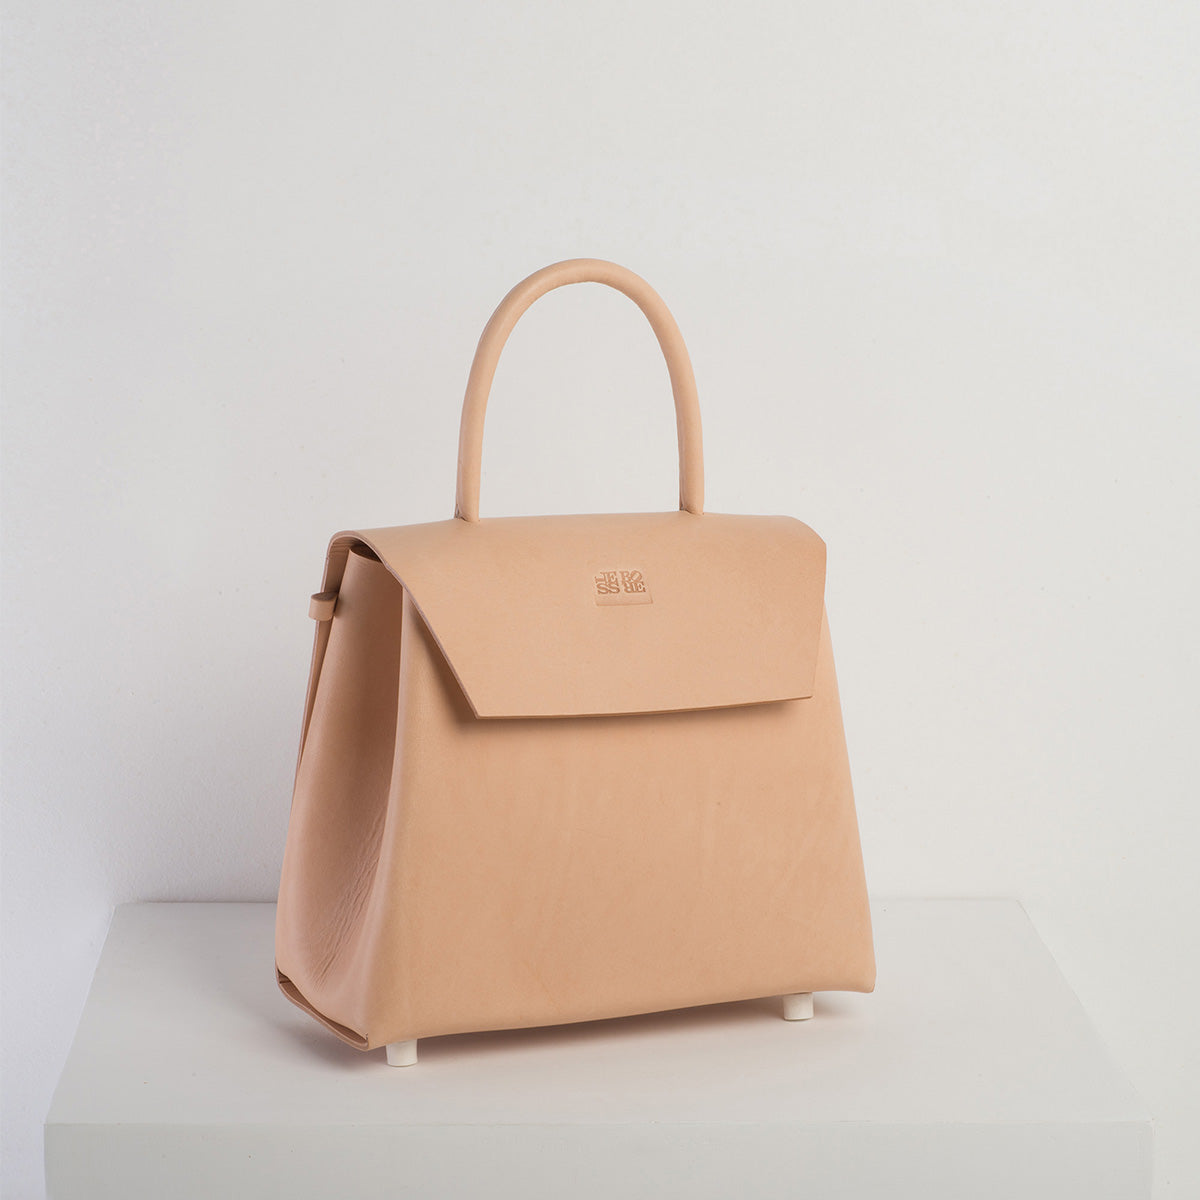 Maddi - Less Bore Luxury Handbags - Less Bore - Luxury Handbags | Spanish Brand  | Luxury | Responsible Sourced Handbag Brand - Less Bore - Spanish Handbag - Hand Stitched | Ecological Handbag Brand | Beautiful Handbag - Less Bore - Maddi - Spanish Design - Concept Store - Nude